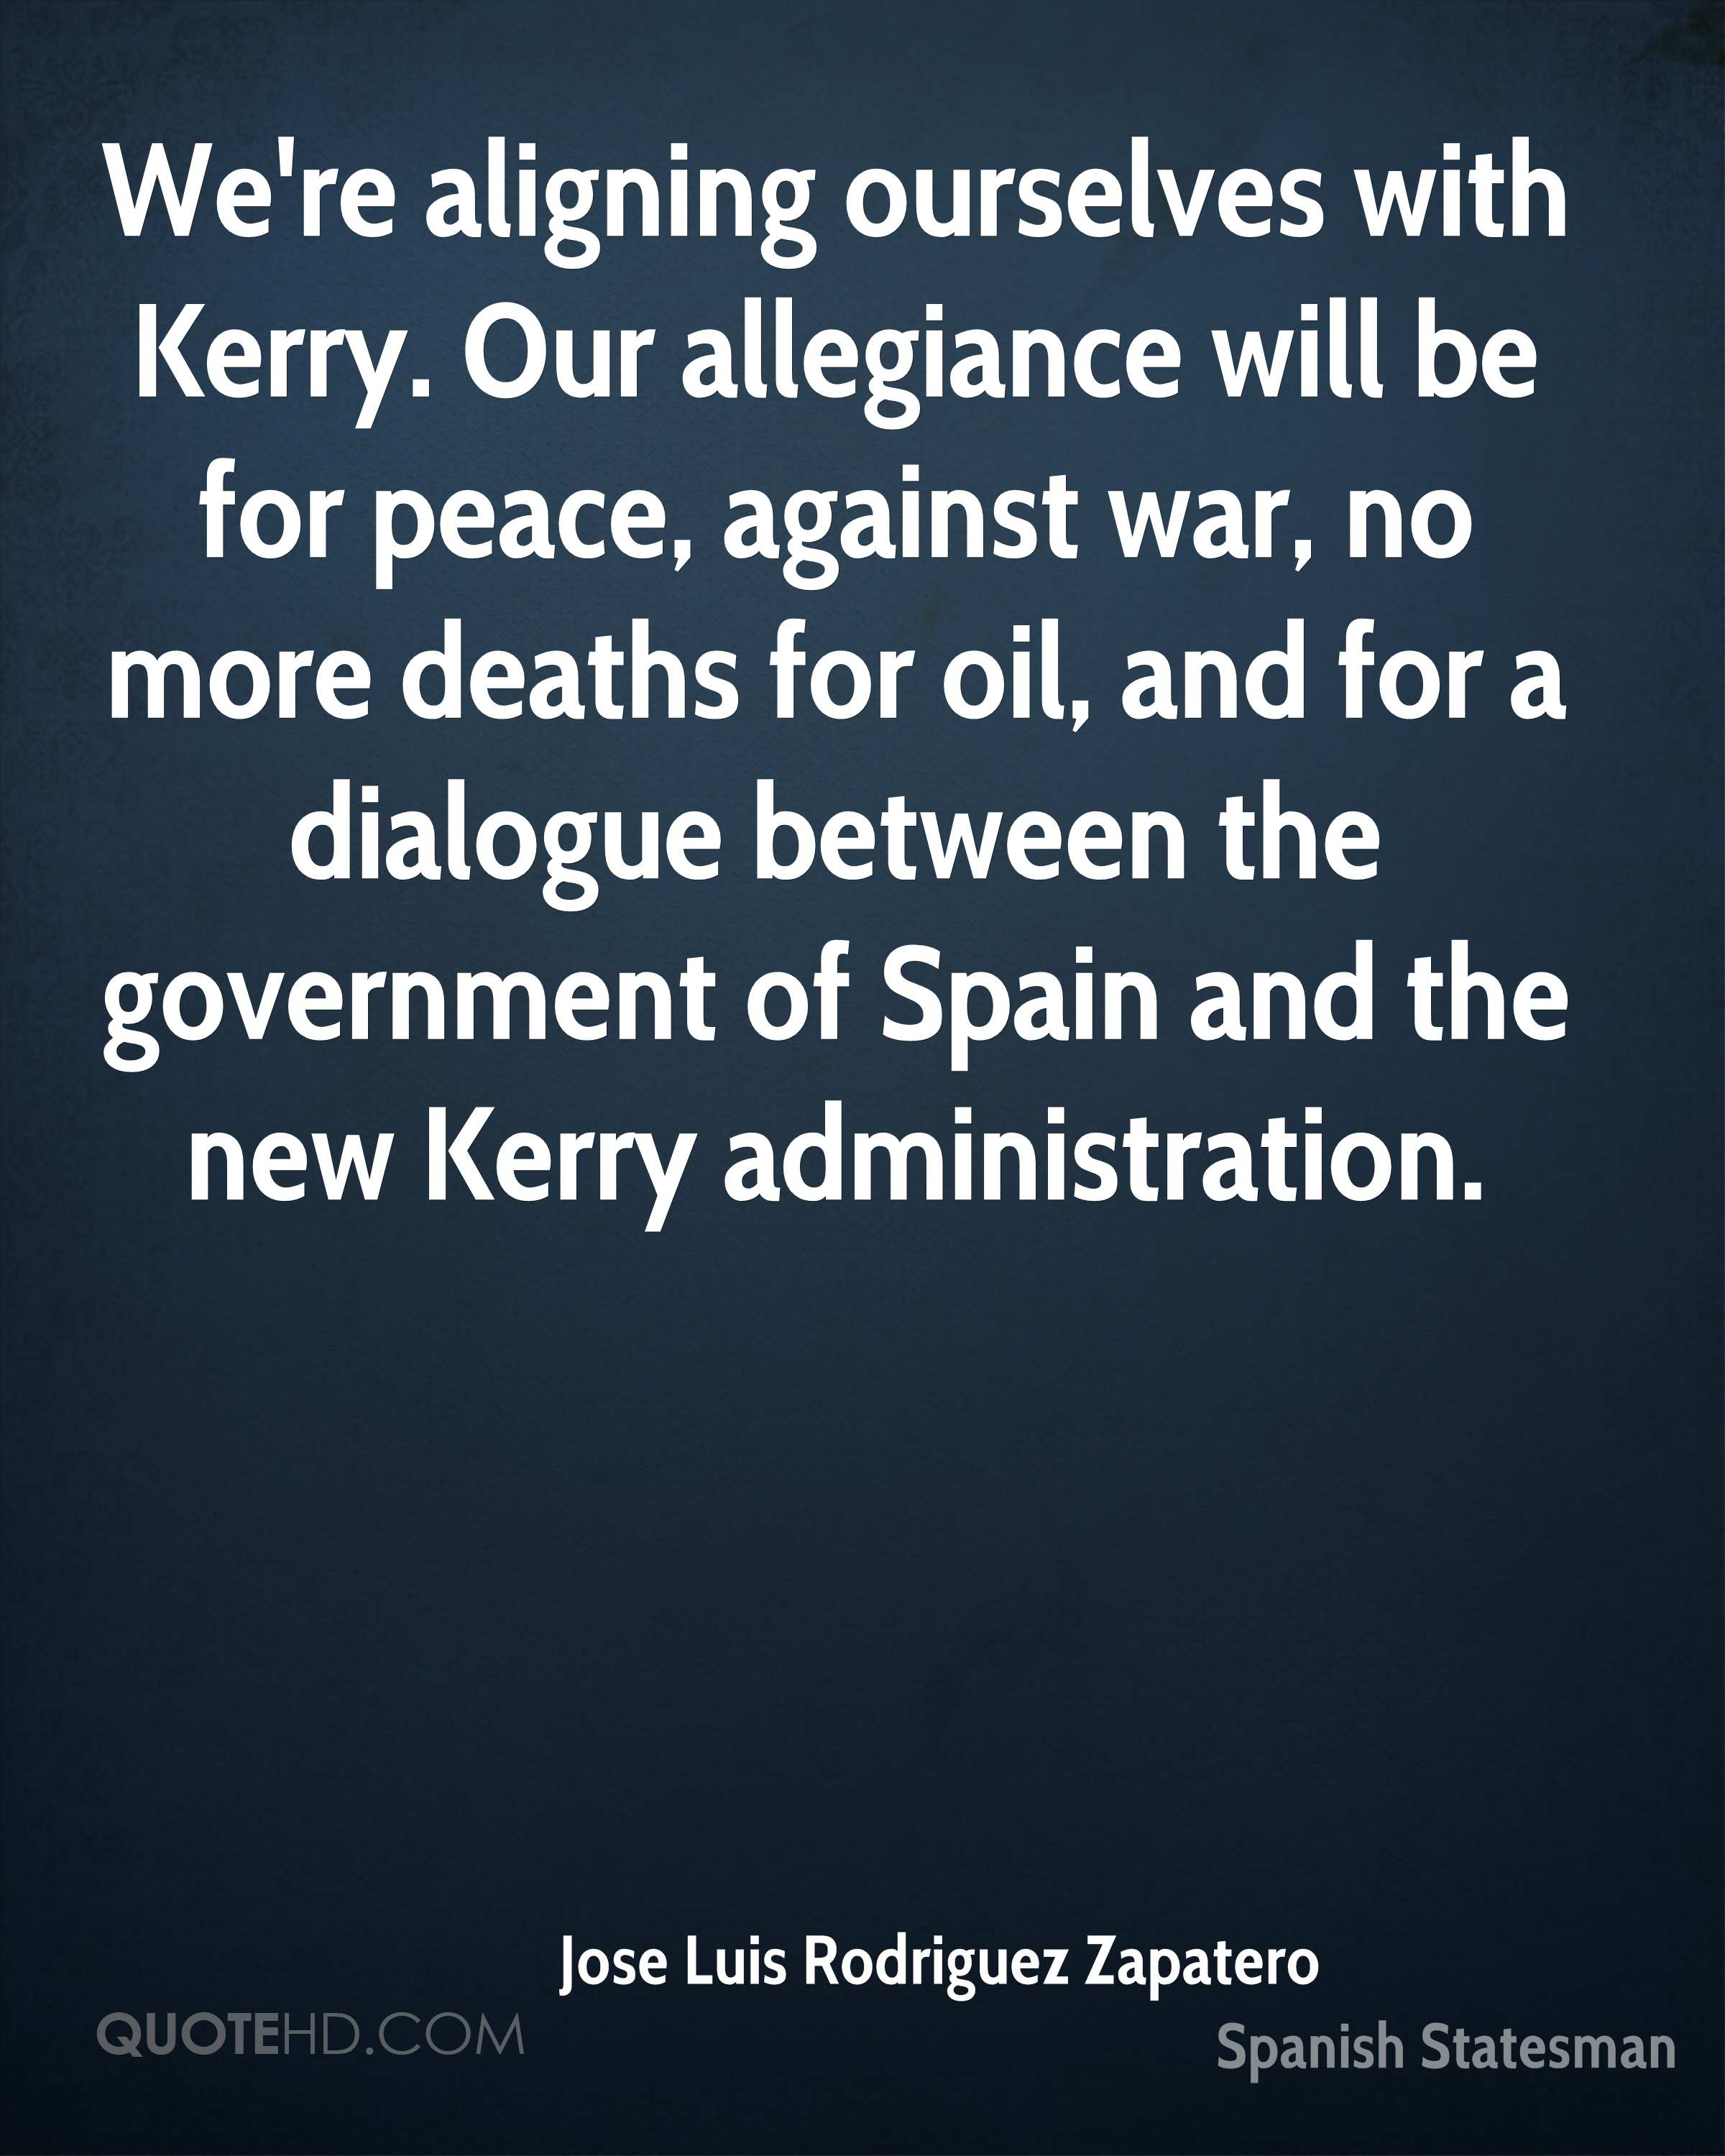 We're aligning ourselves with Kerry. Our allegiance will be for peace, against war, no more deaths for oil, and for a dialogue between the government of Spain and the new Kerry administration.